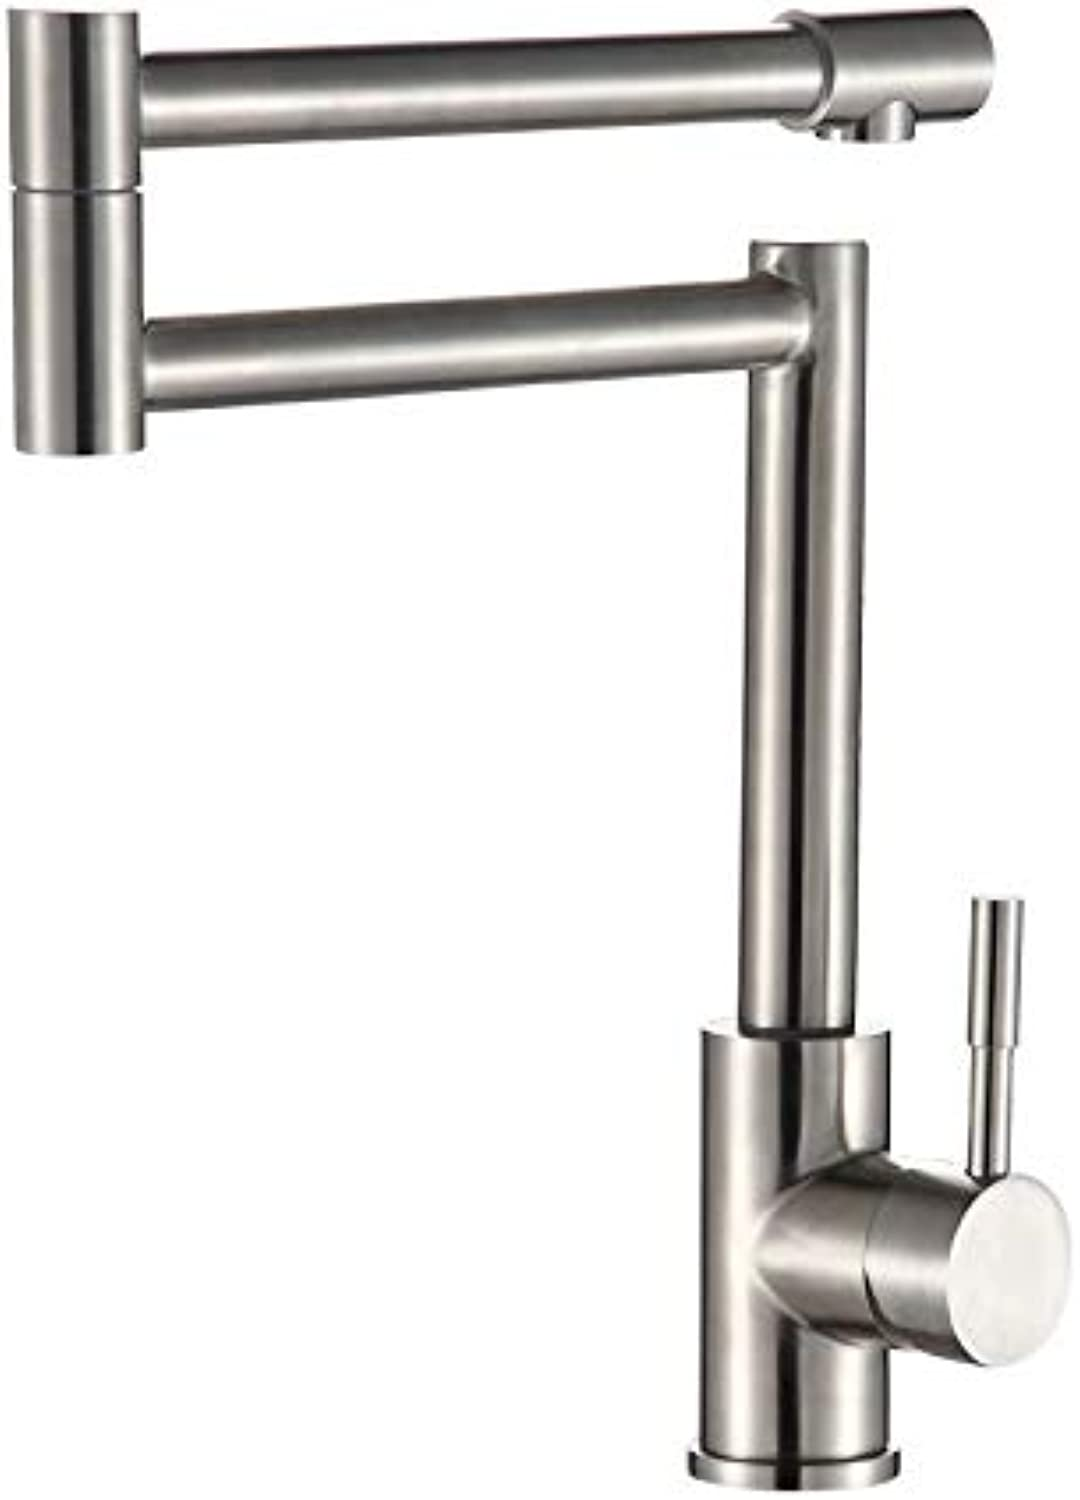 redOOY Taps 304 Stainless Steel Faucet Kitchen Hot And Cold Lead-Free Collapsible Sink Basin Above Counter Basin Faucet